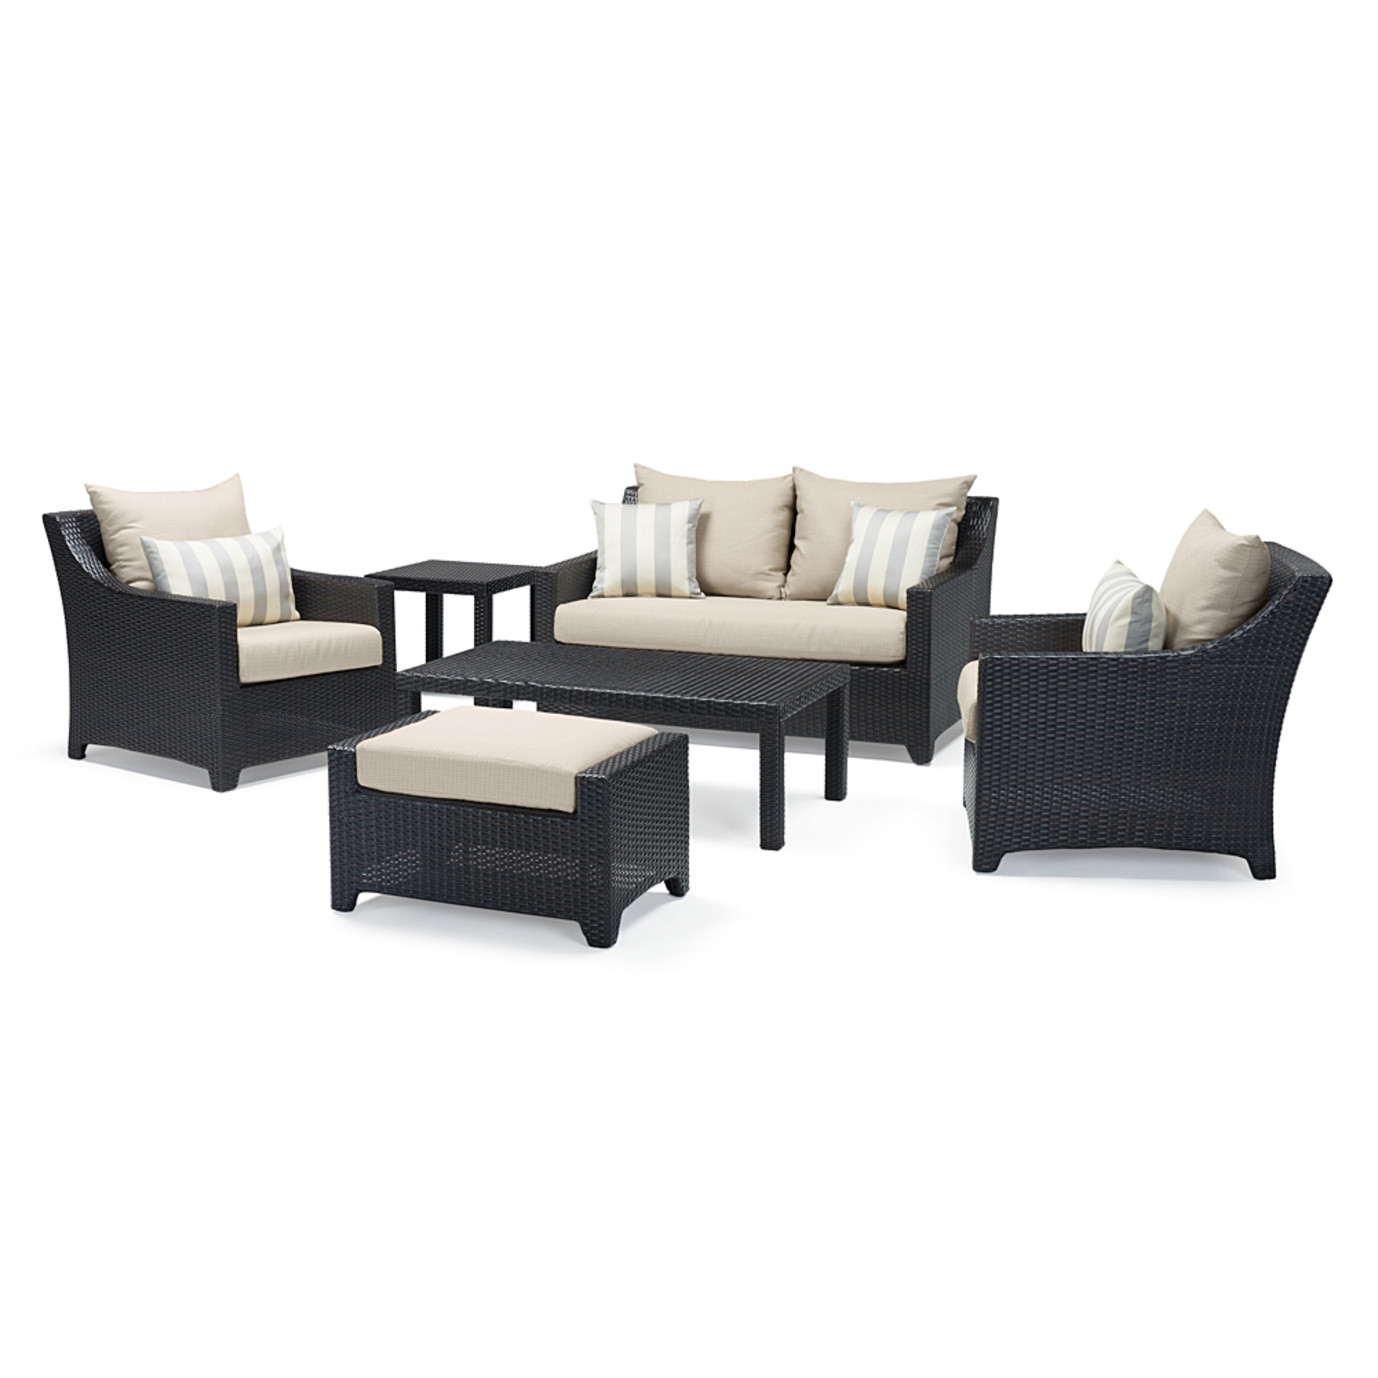 Deco™ 6pc Love and Club Seating Set - Slate Gray